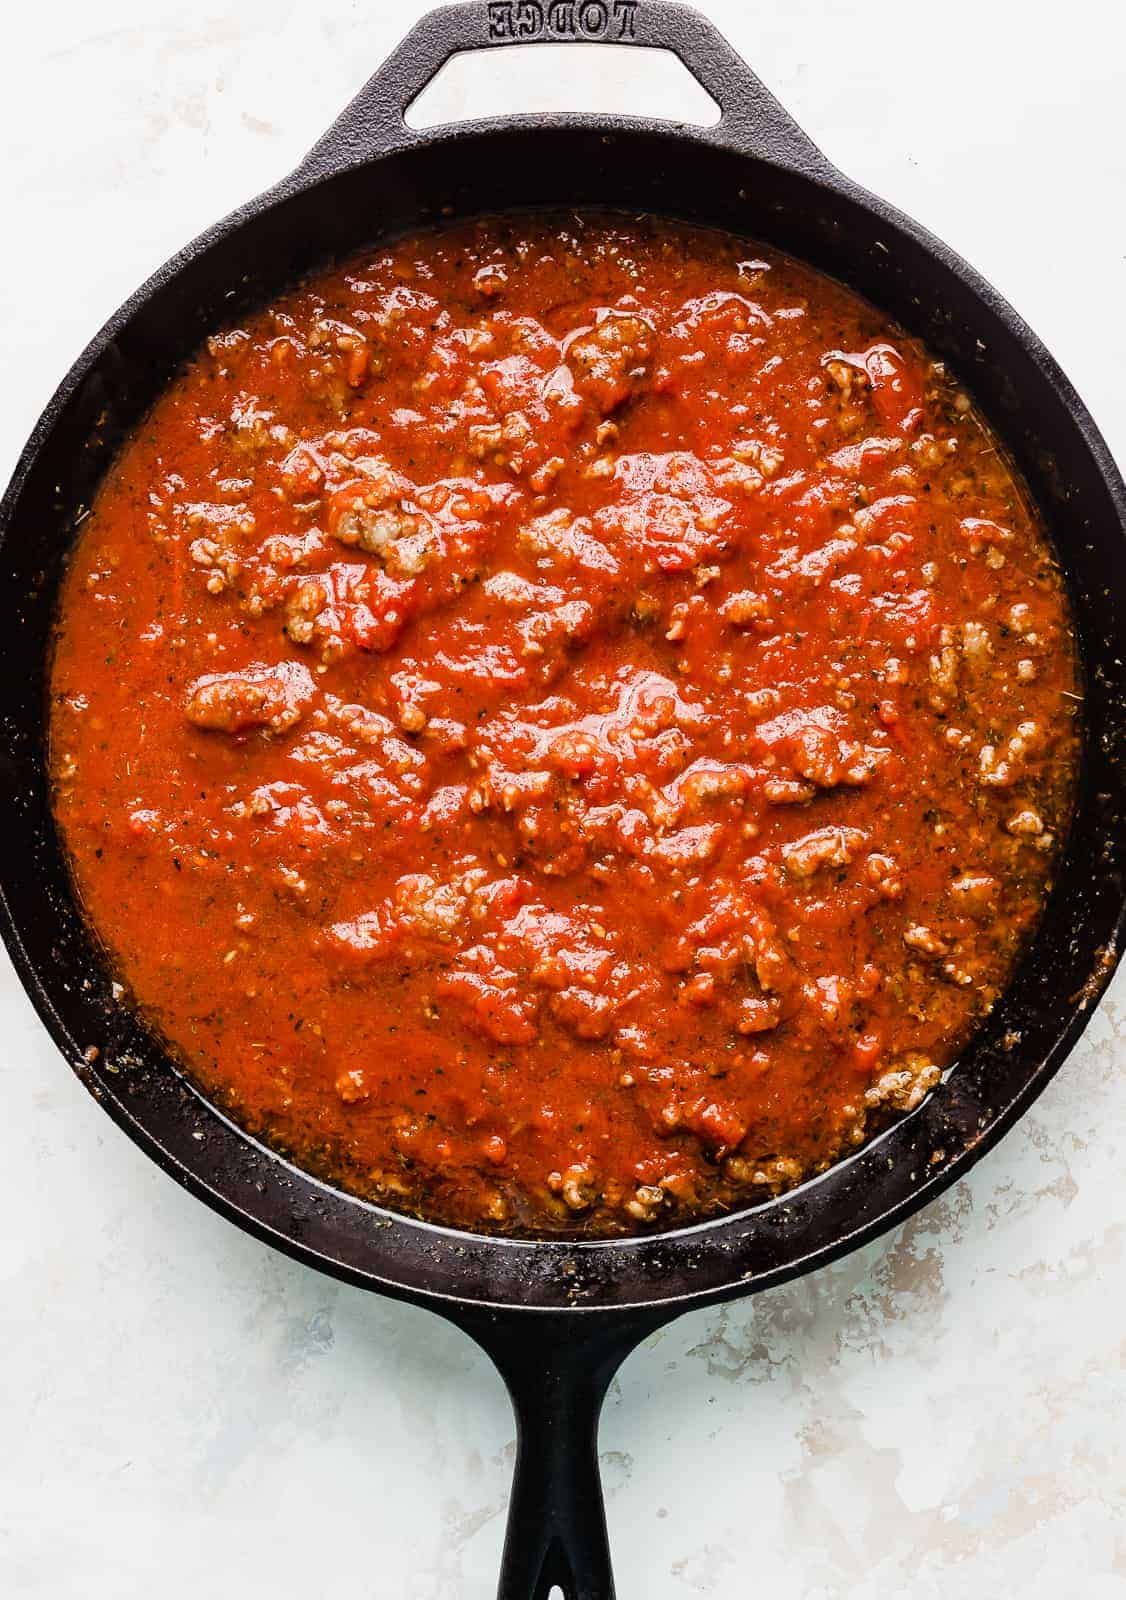 Crushed tomatoes and cooked meat in a large skillet.